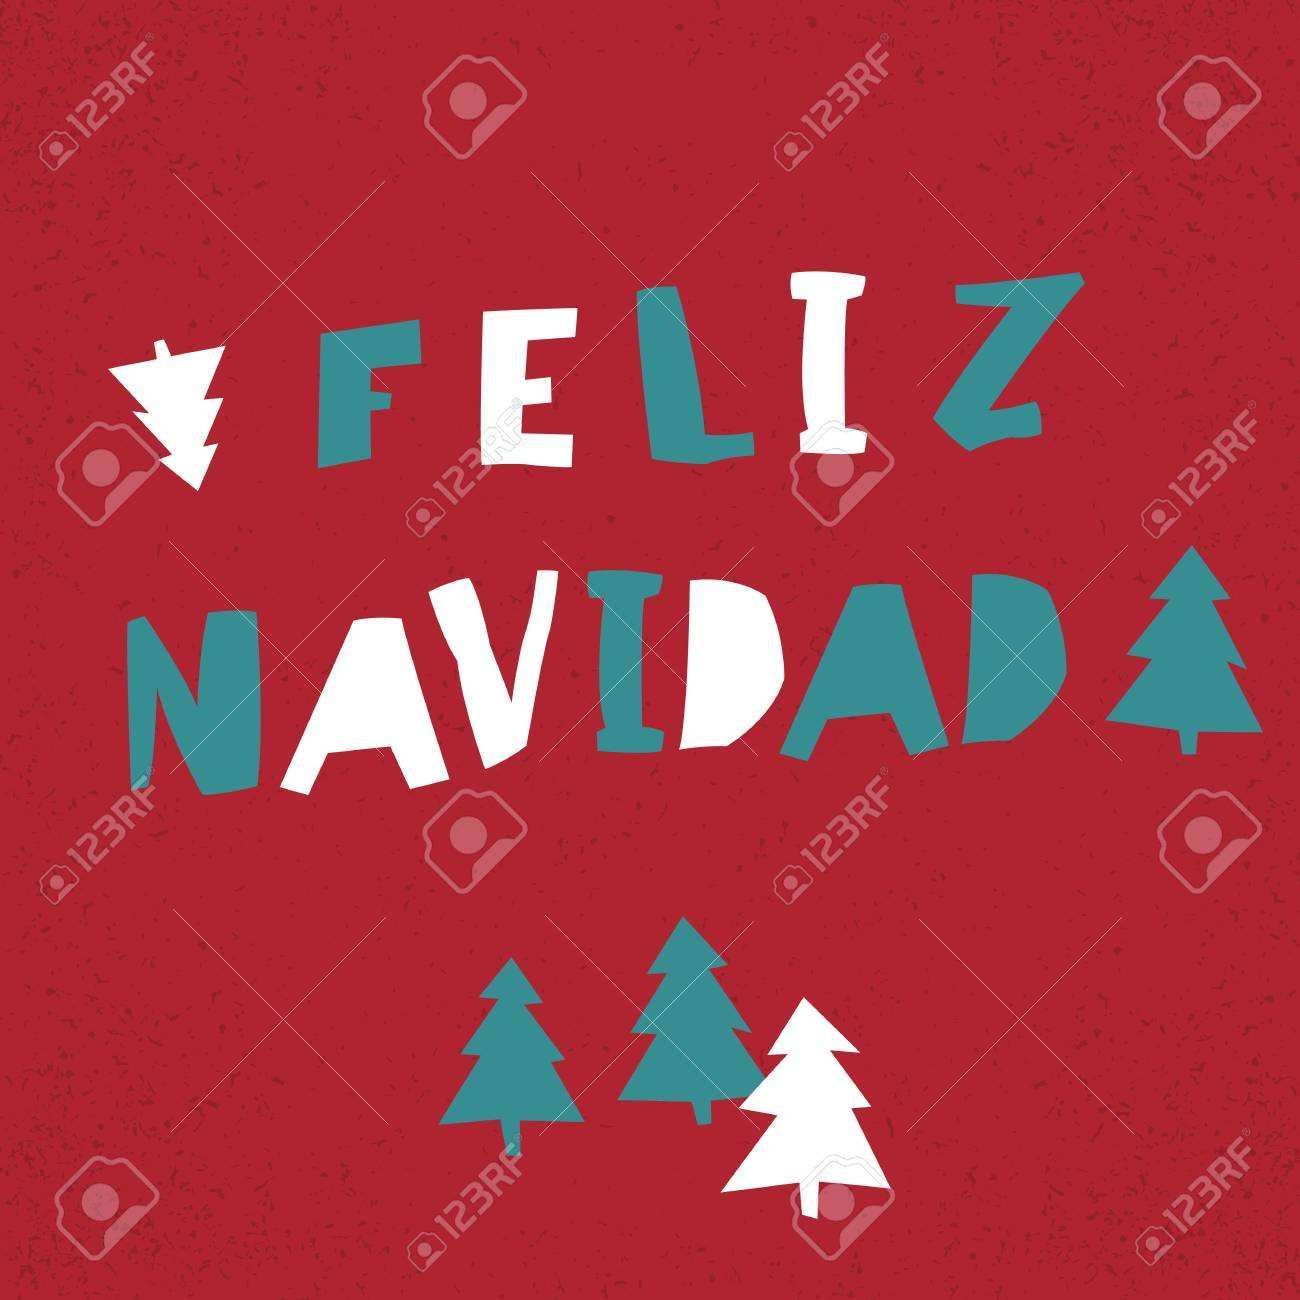 11 Standard Christmas Card Templates In Spanish With Stunning Design with Christmas Card Templates In Spanish